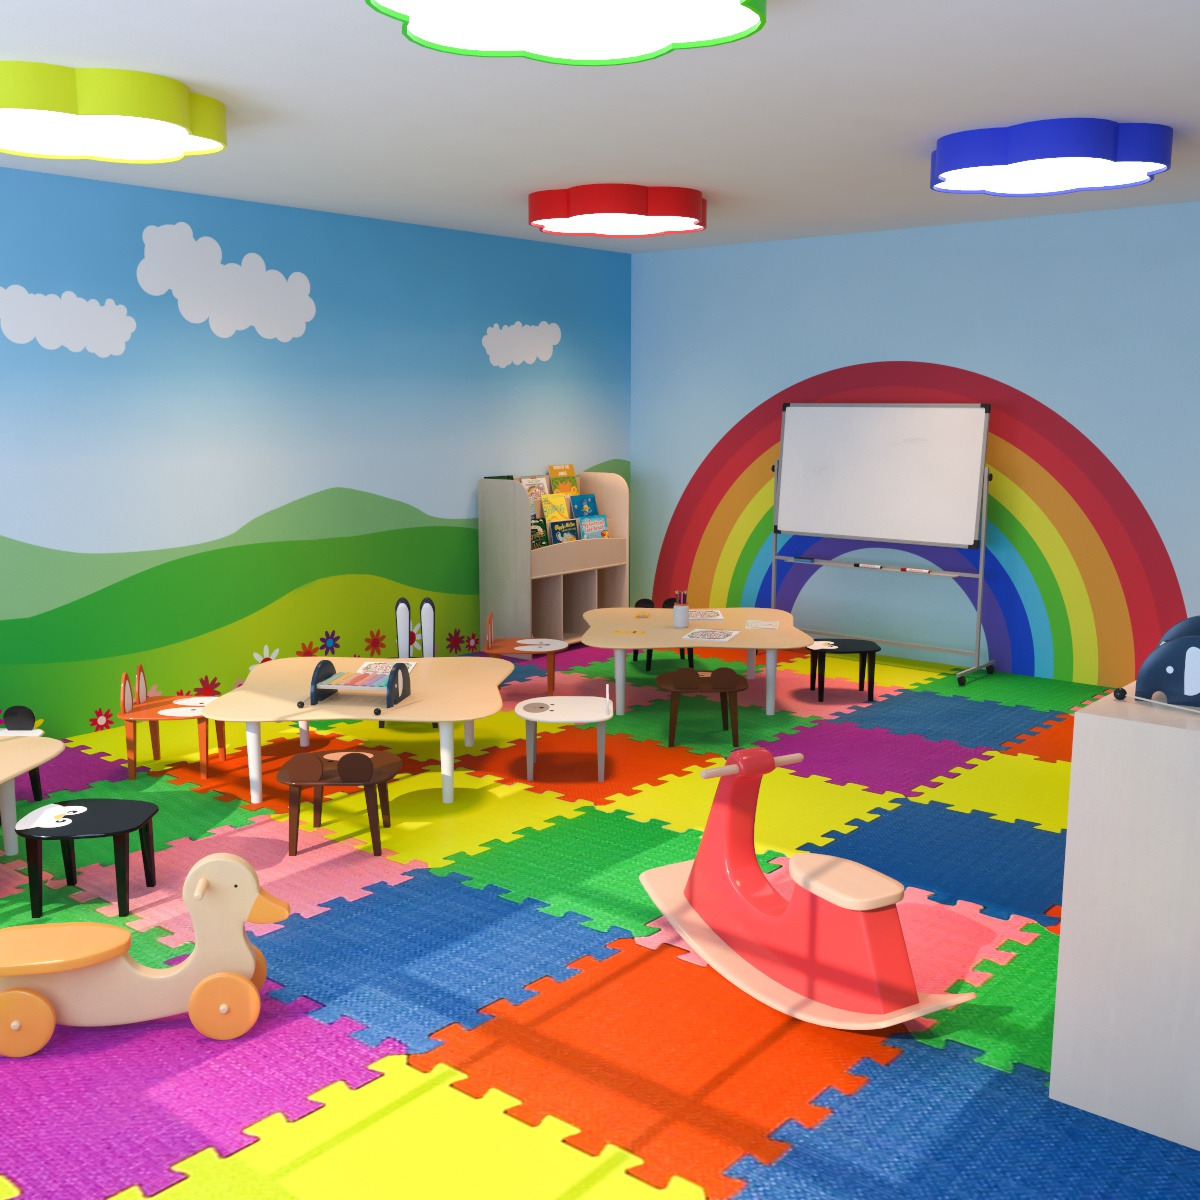 Why should a child go to a nursery school? - Quora